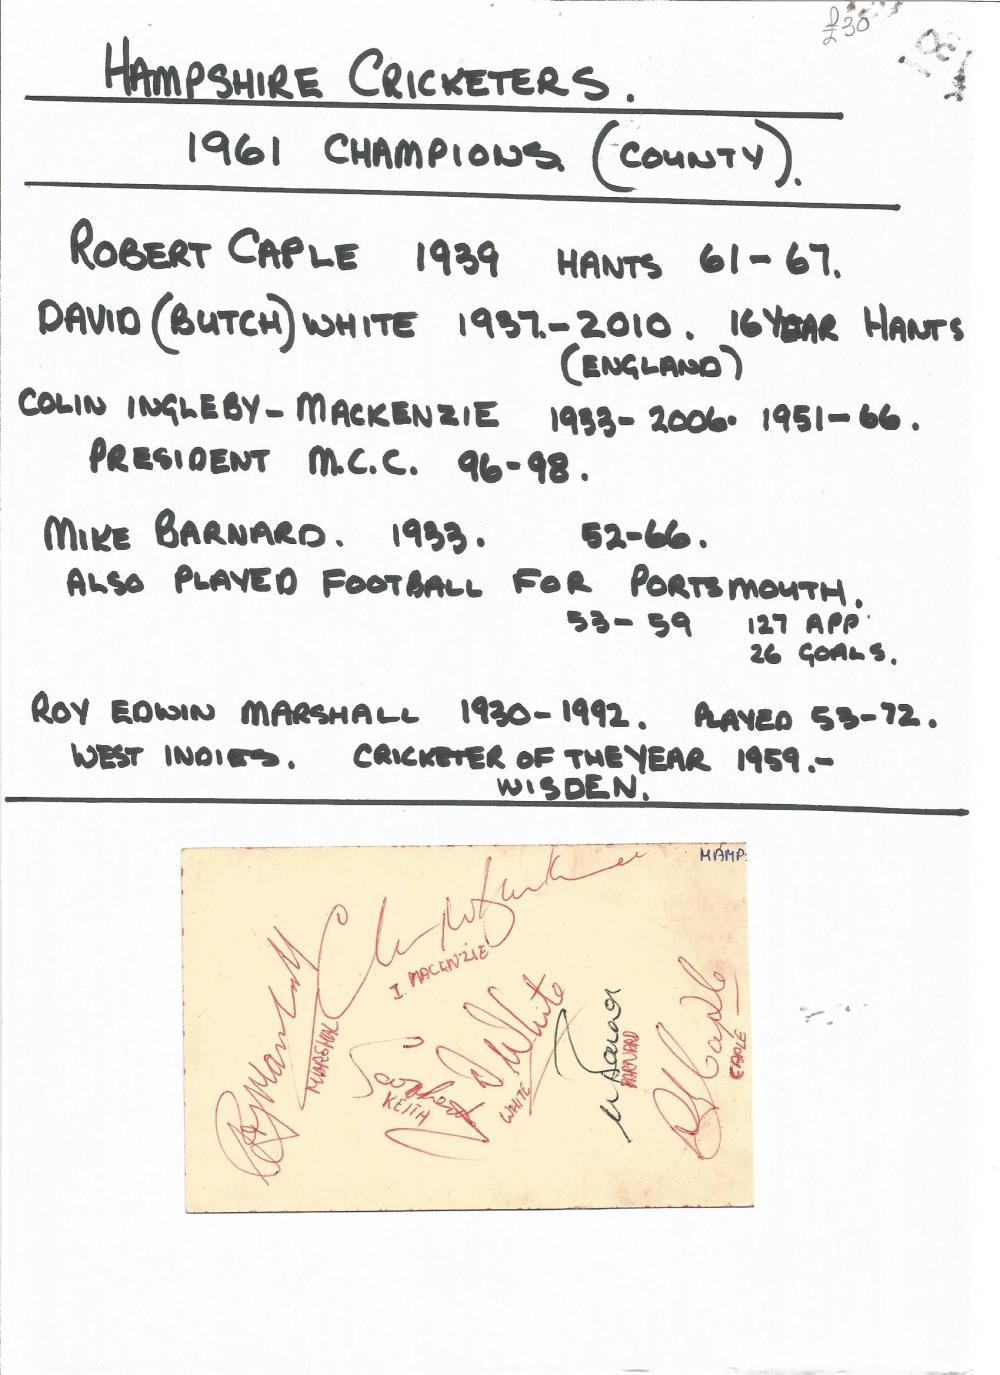 Cricket Hampshire 1961 county Champions signature piece 2no 5x3 album page signed by Robert Caple,